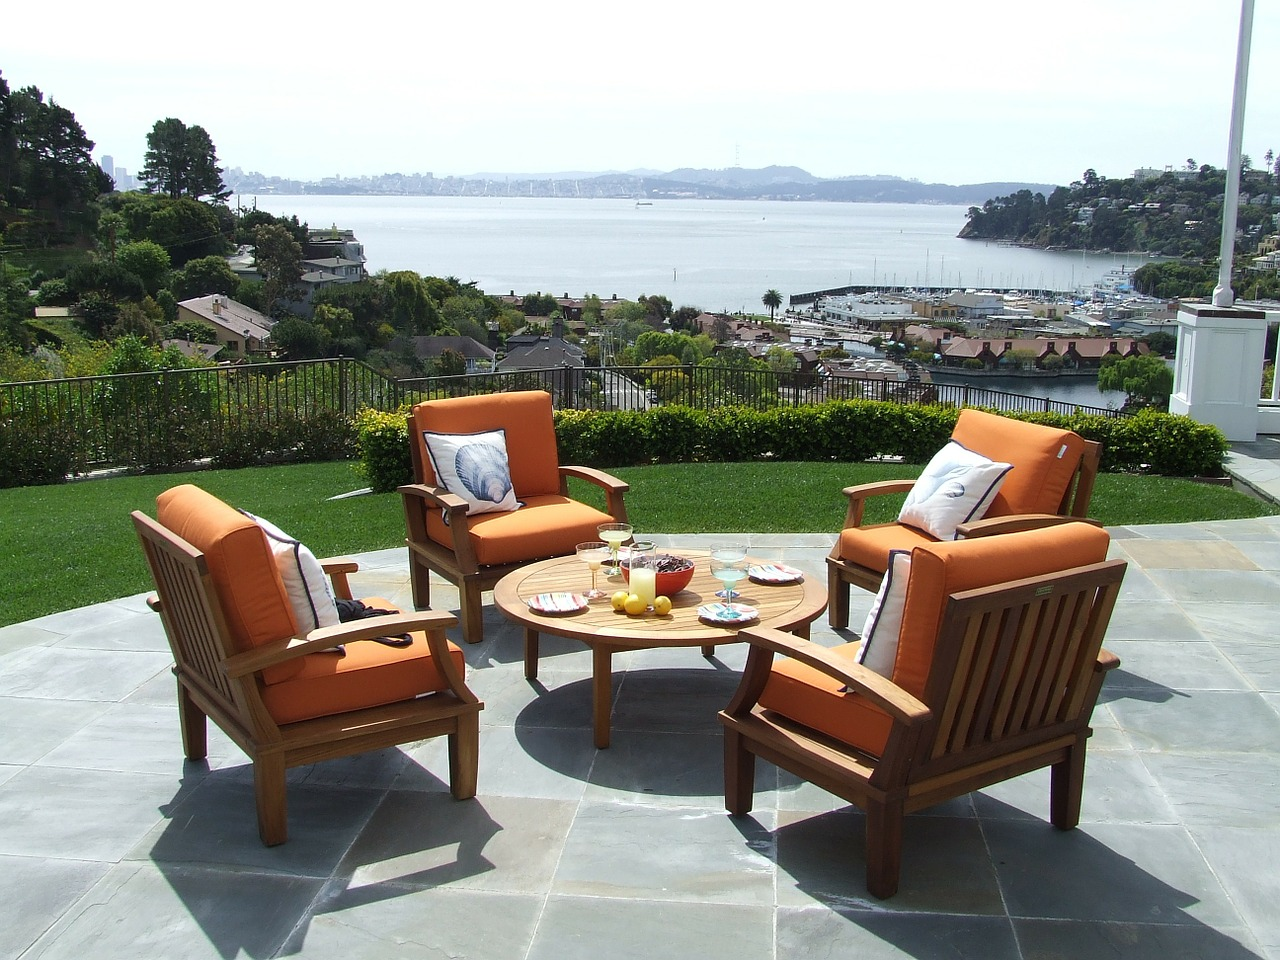 Patio Planning Tips In San Clemente, CA